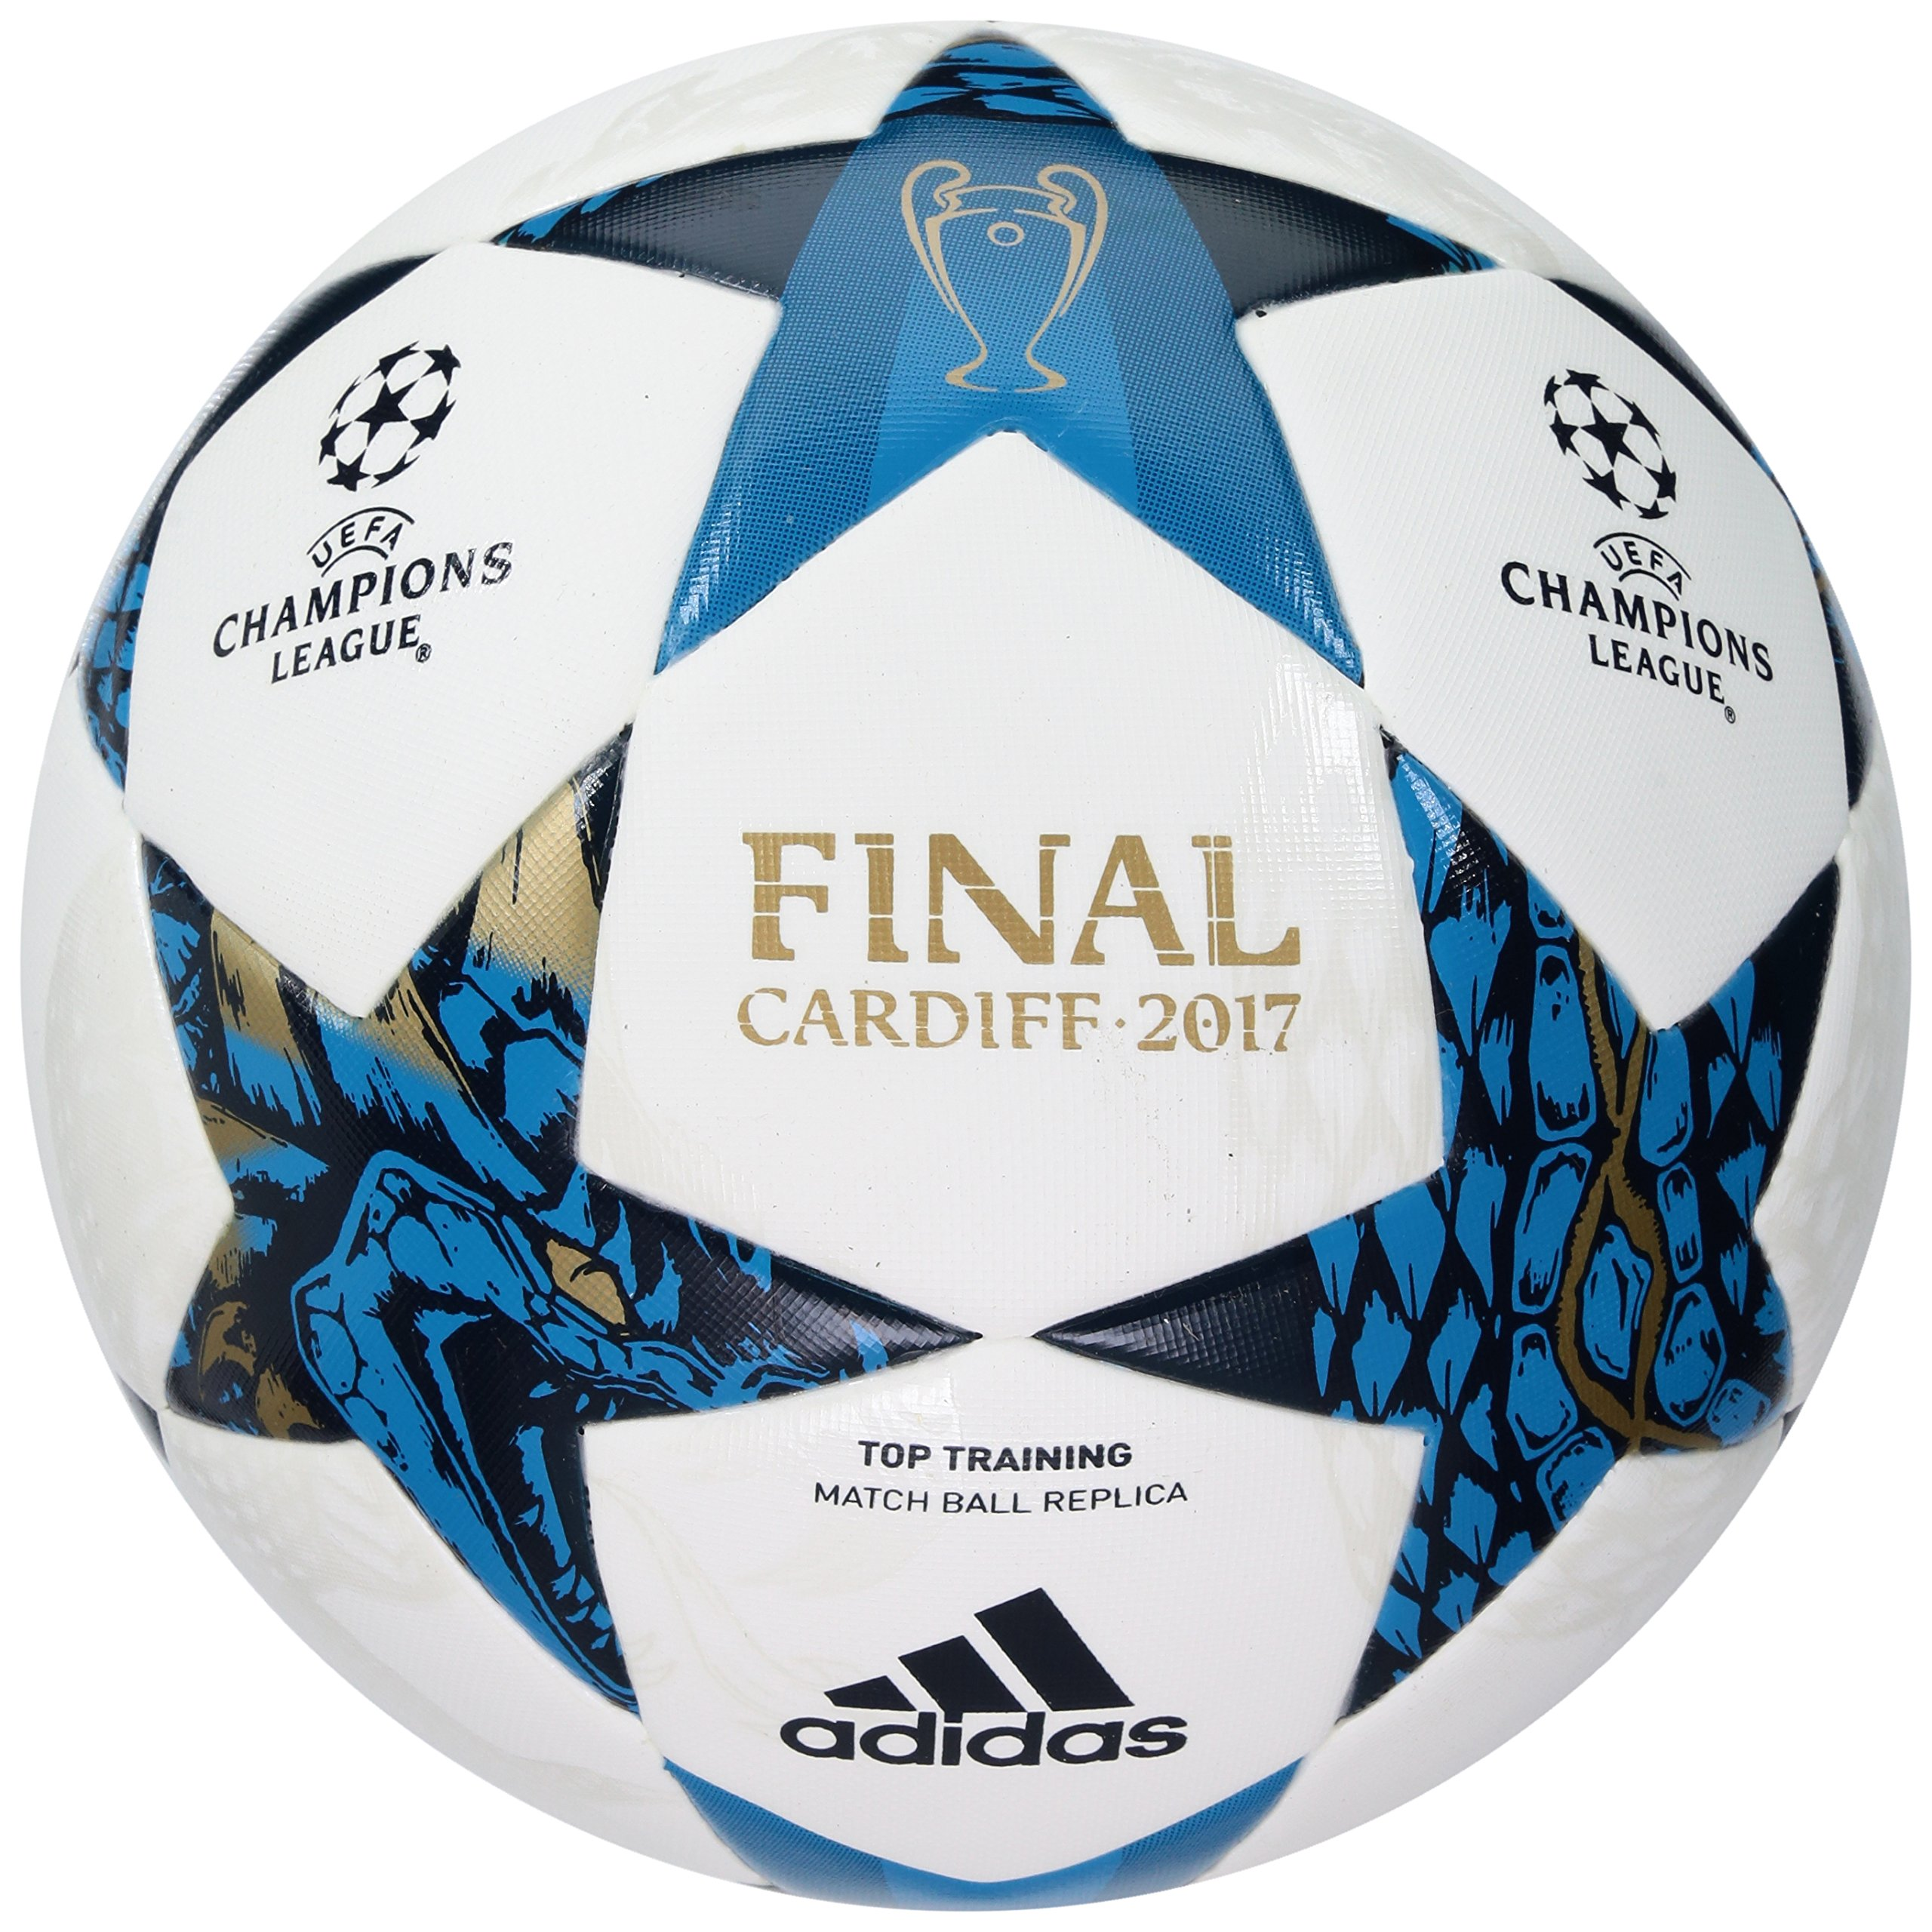 info for 37e14 895f8 Galleon - Adidas Performance Champions League Finale Cardiff Top Training  Soccer Ball, White Mystery Blue Cyan, Size 5